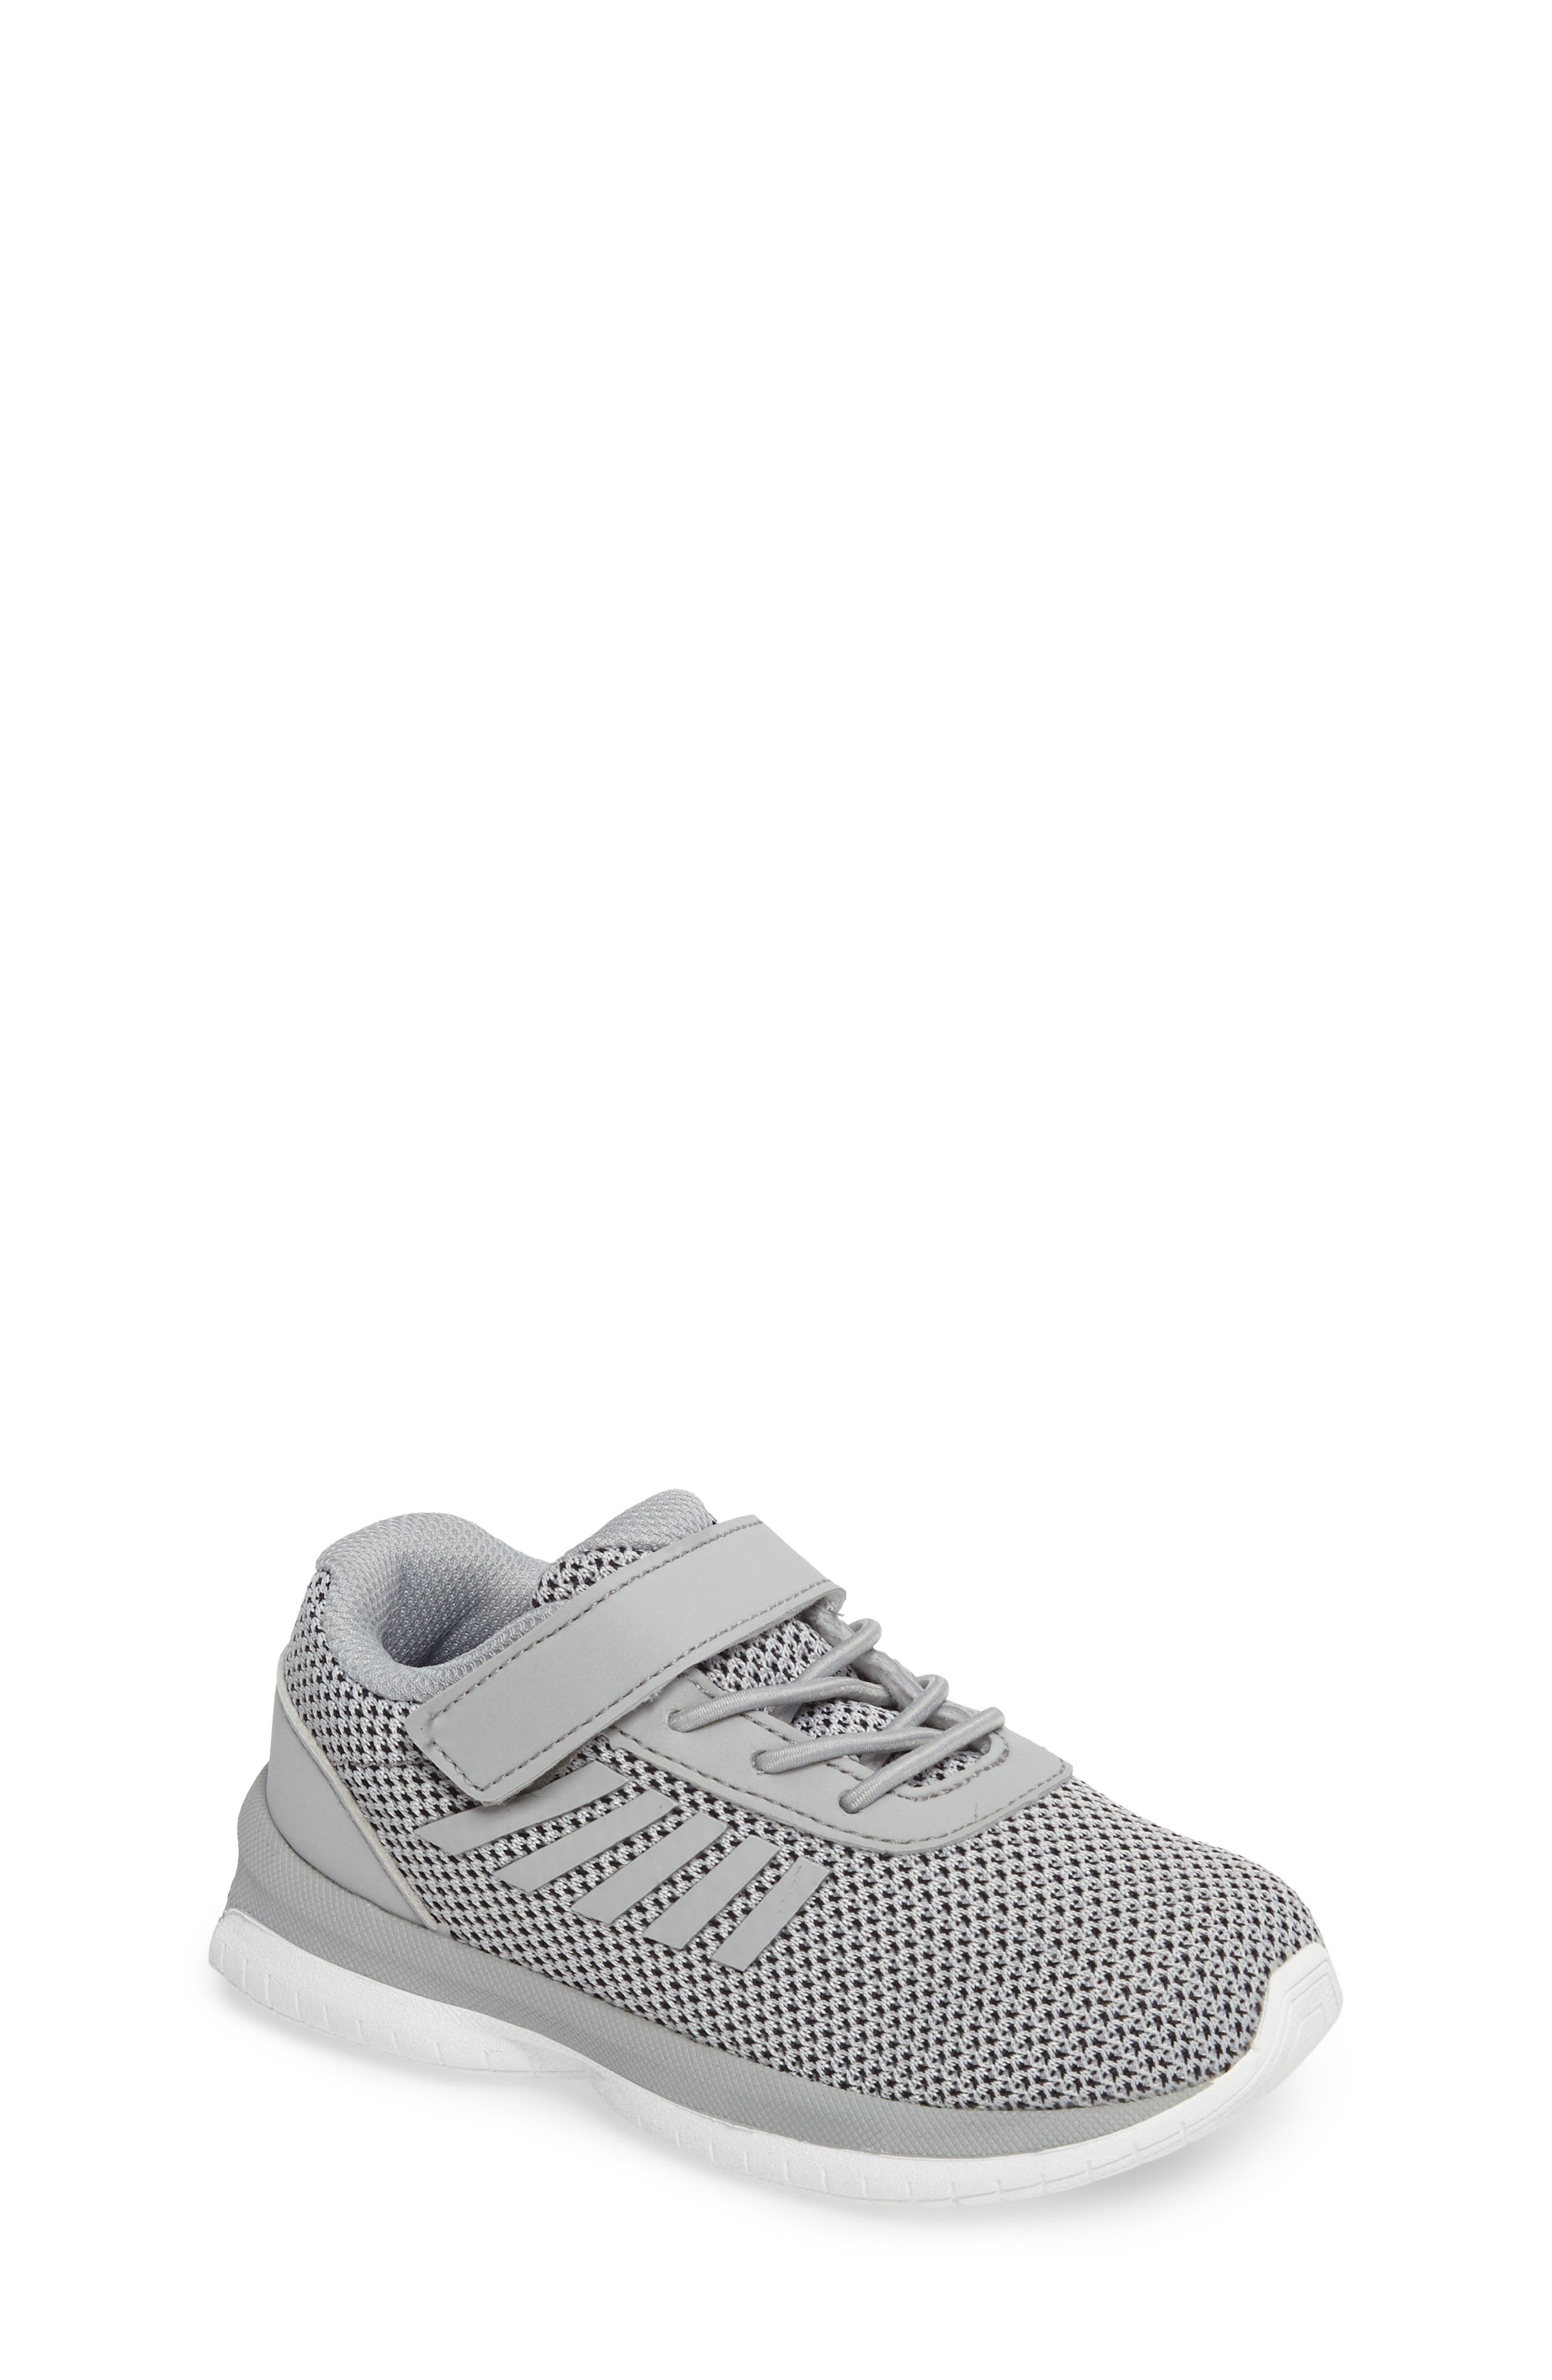 Tubes Infinity Sneaker,                         Main,                         color, Highrise/ White